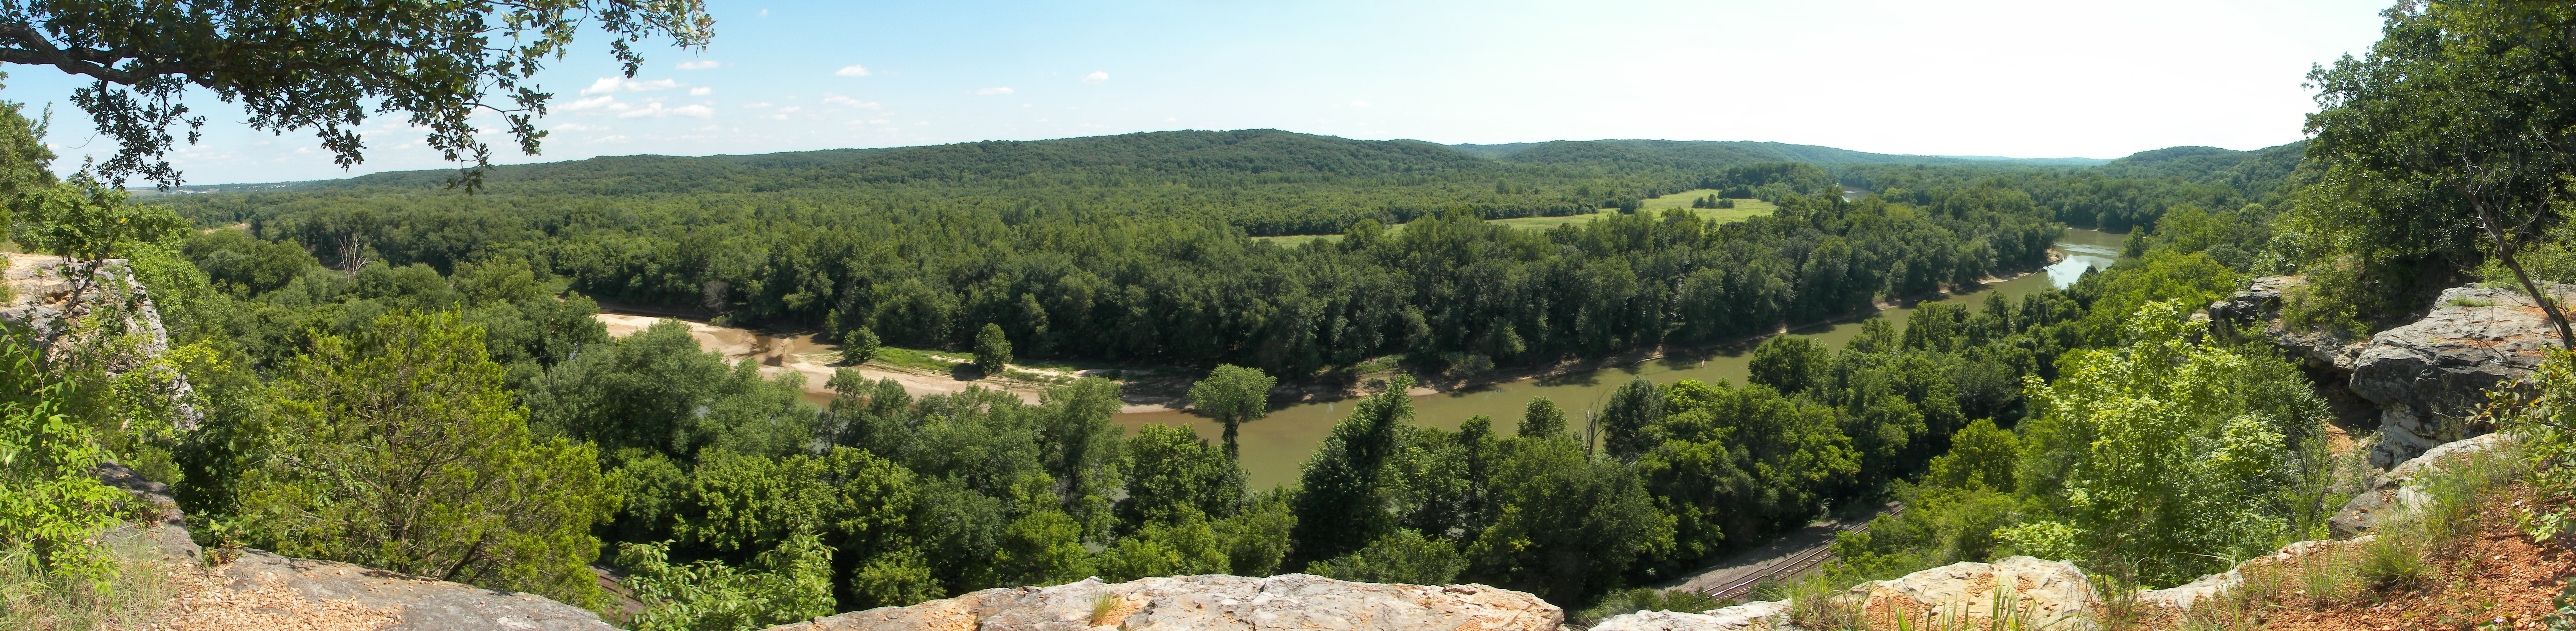 Castlewood State Park MO